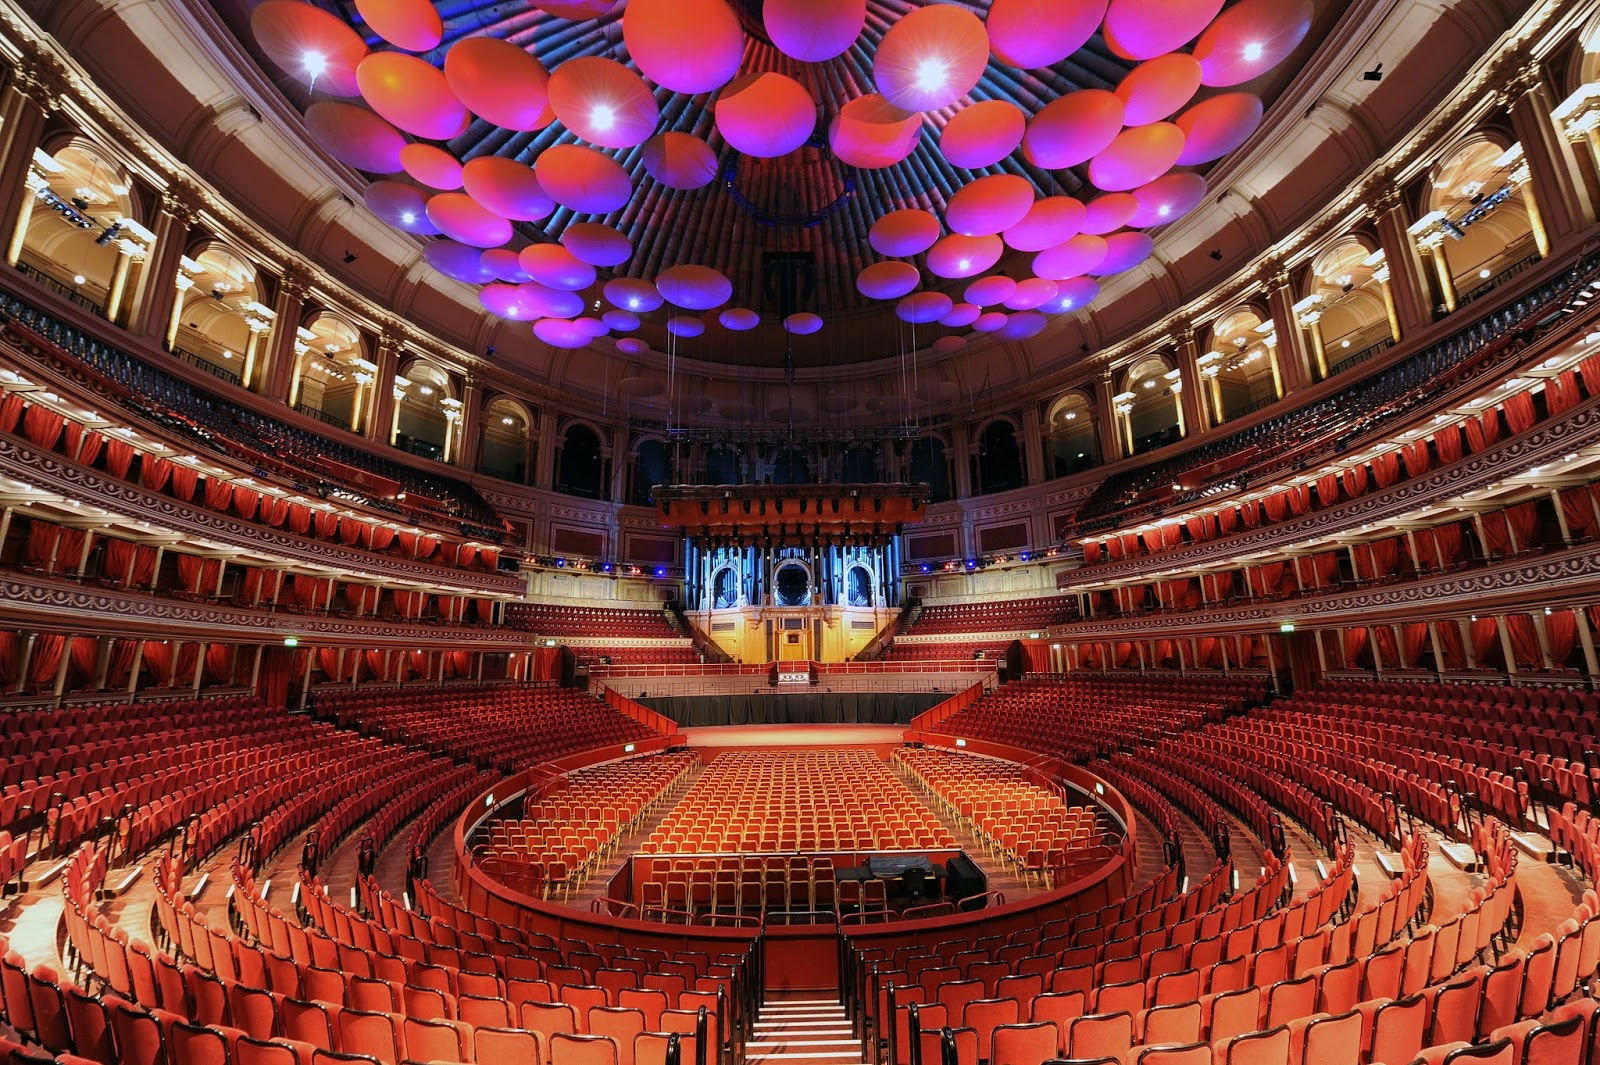 El mirador nocturno royal albert hall for Door 4 royal albert hall